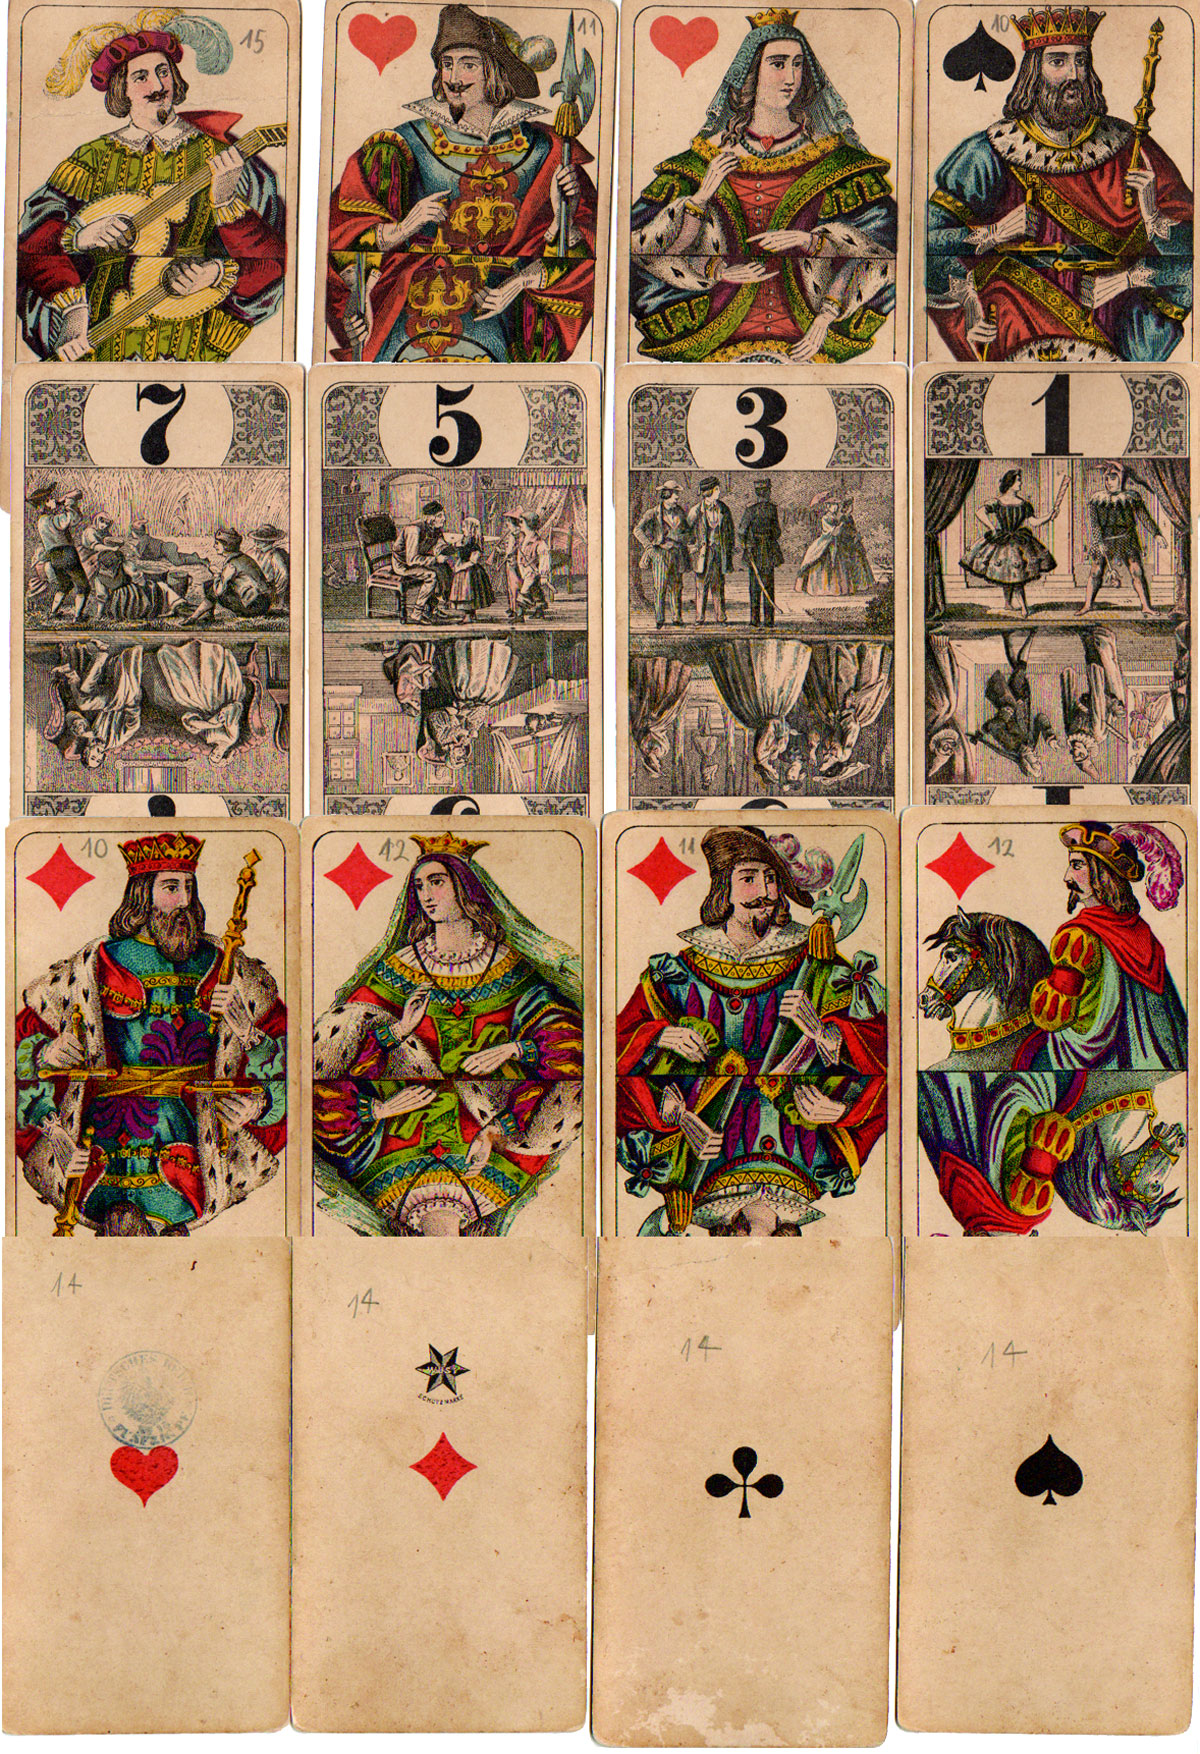 Encyclopedic Tarot by C. L. Wüst, c.1890